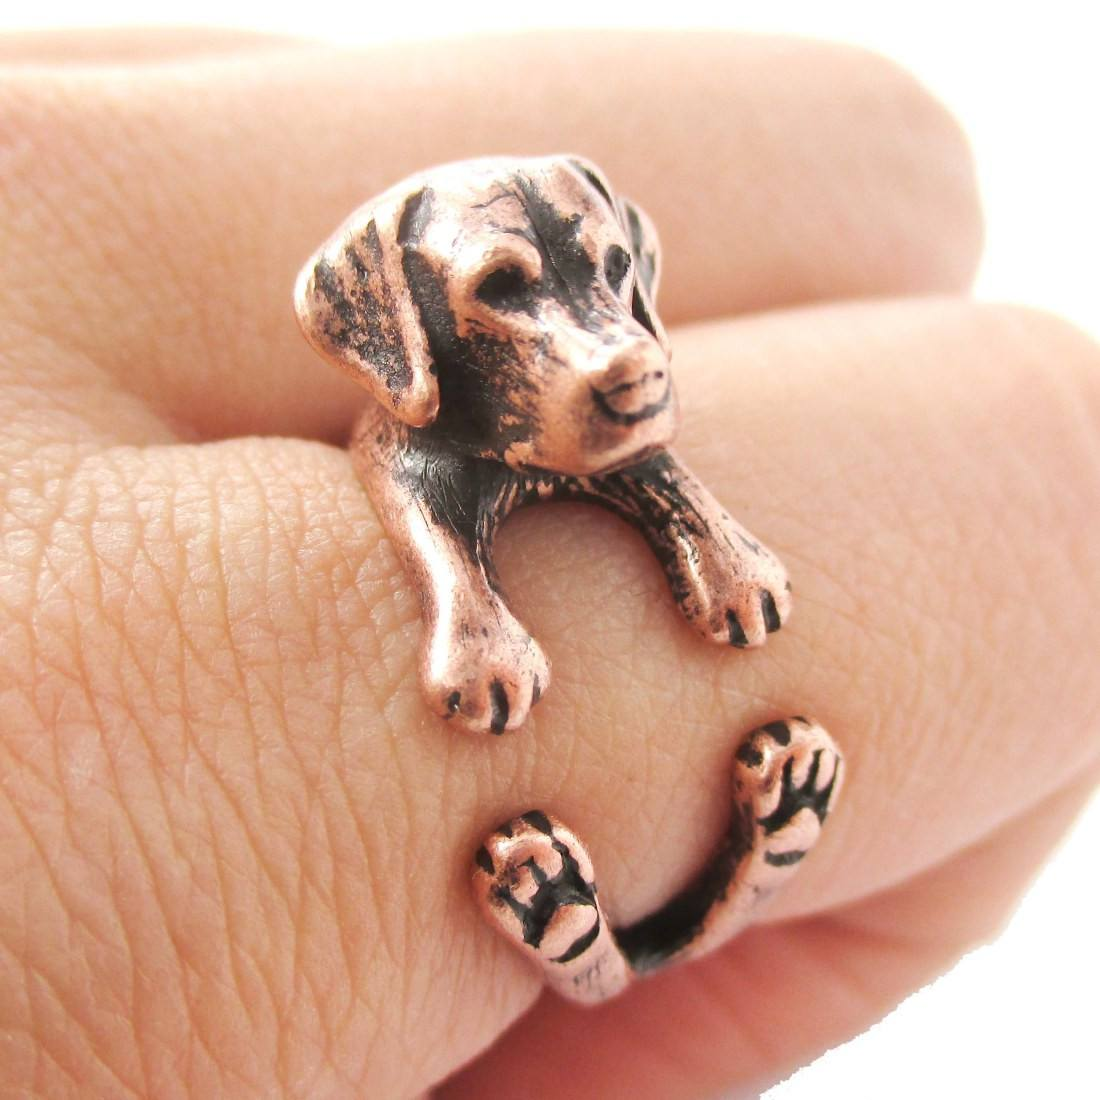 Labrador Retriever Dog Shaped Animal Wrap Ring in Copper